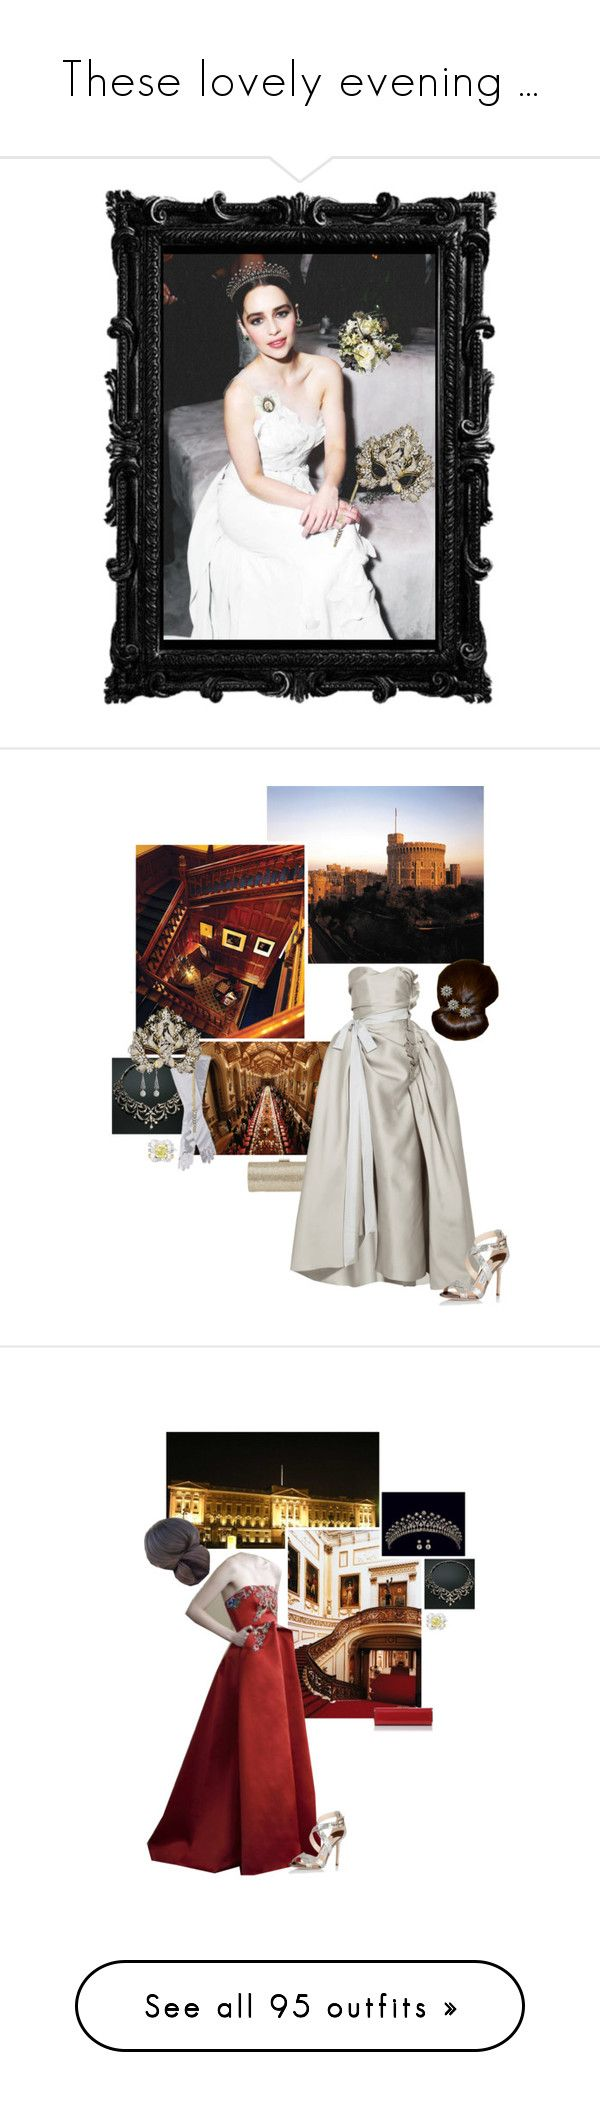 """""""These lovely evening ..."""" by duchessq ❤ liked on Polyvore featuring Elizabeth Taylor, CO, Ultimate, Jimmy Choo, Lanvin, TIARA, L.K.Bennett, Rubin Singer, Masquerade and Handle"""